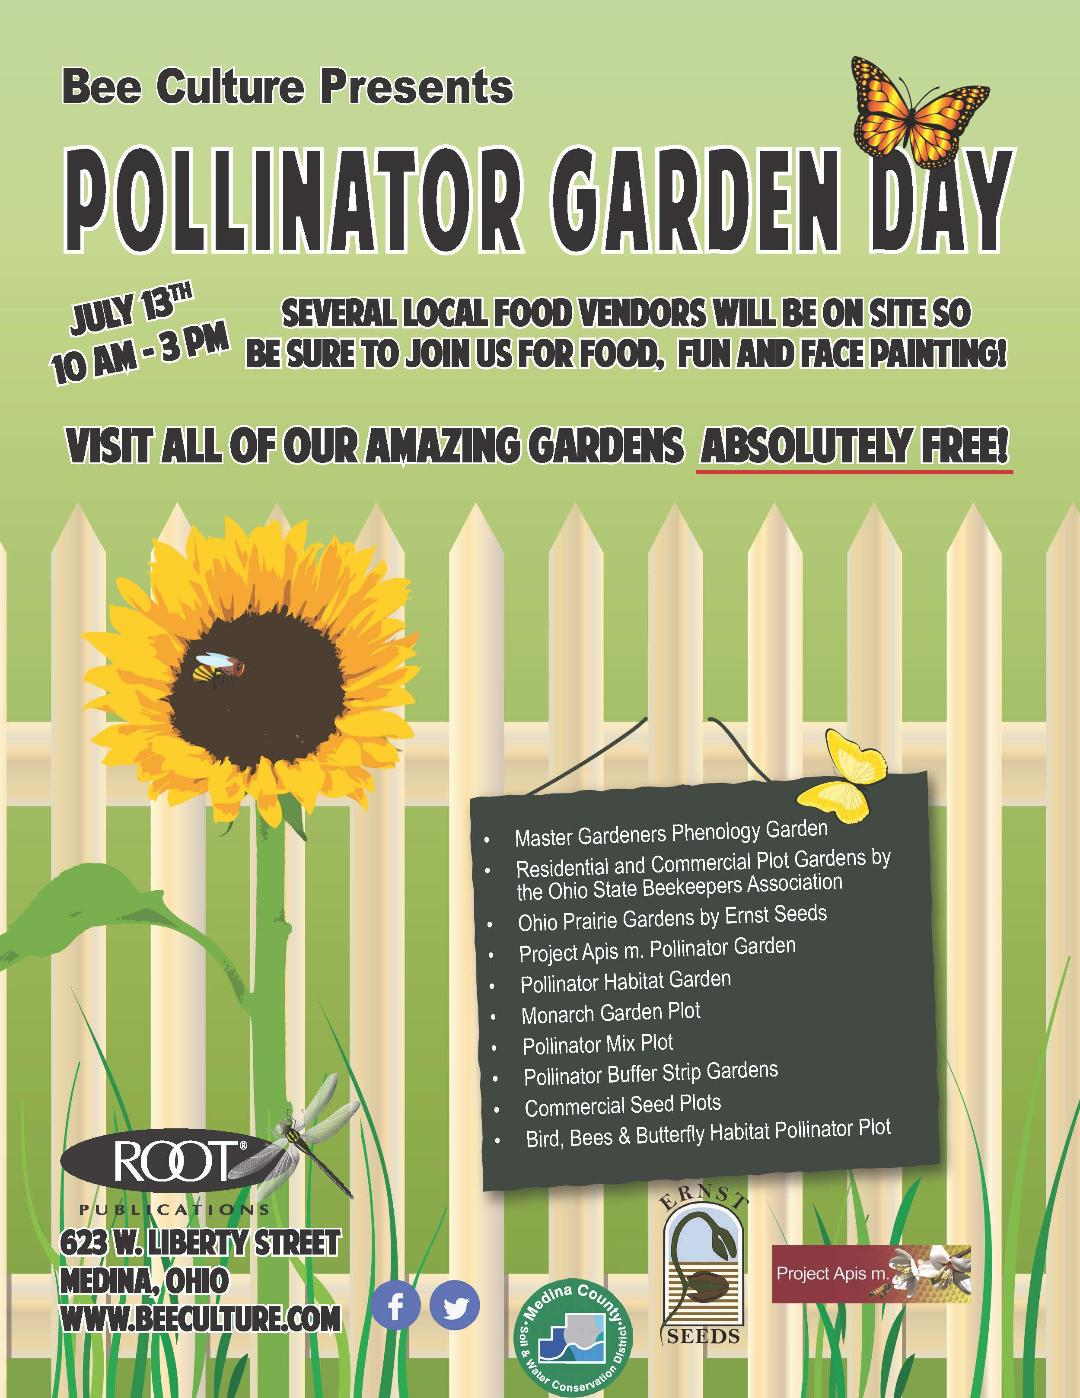 CATCH THE BUZZ – Don't Miss Bee Culture's Pollinator Garden Day